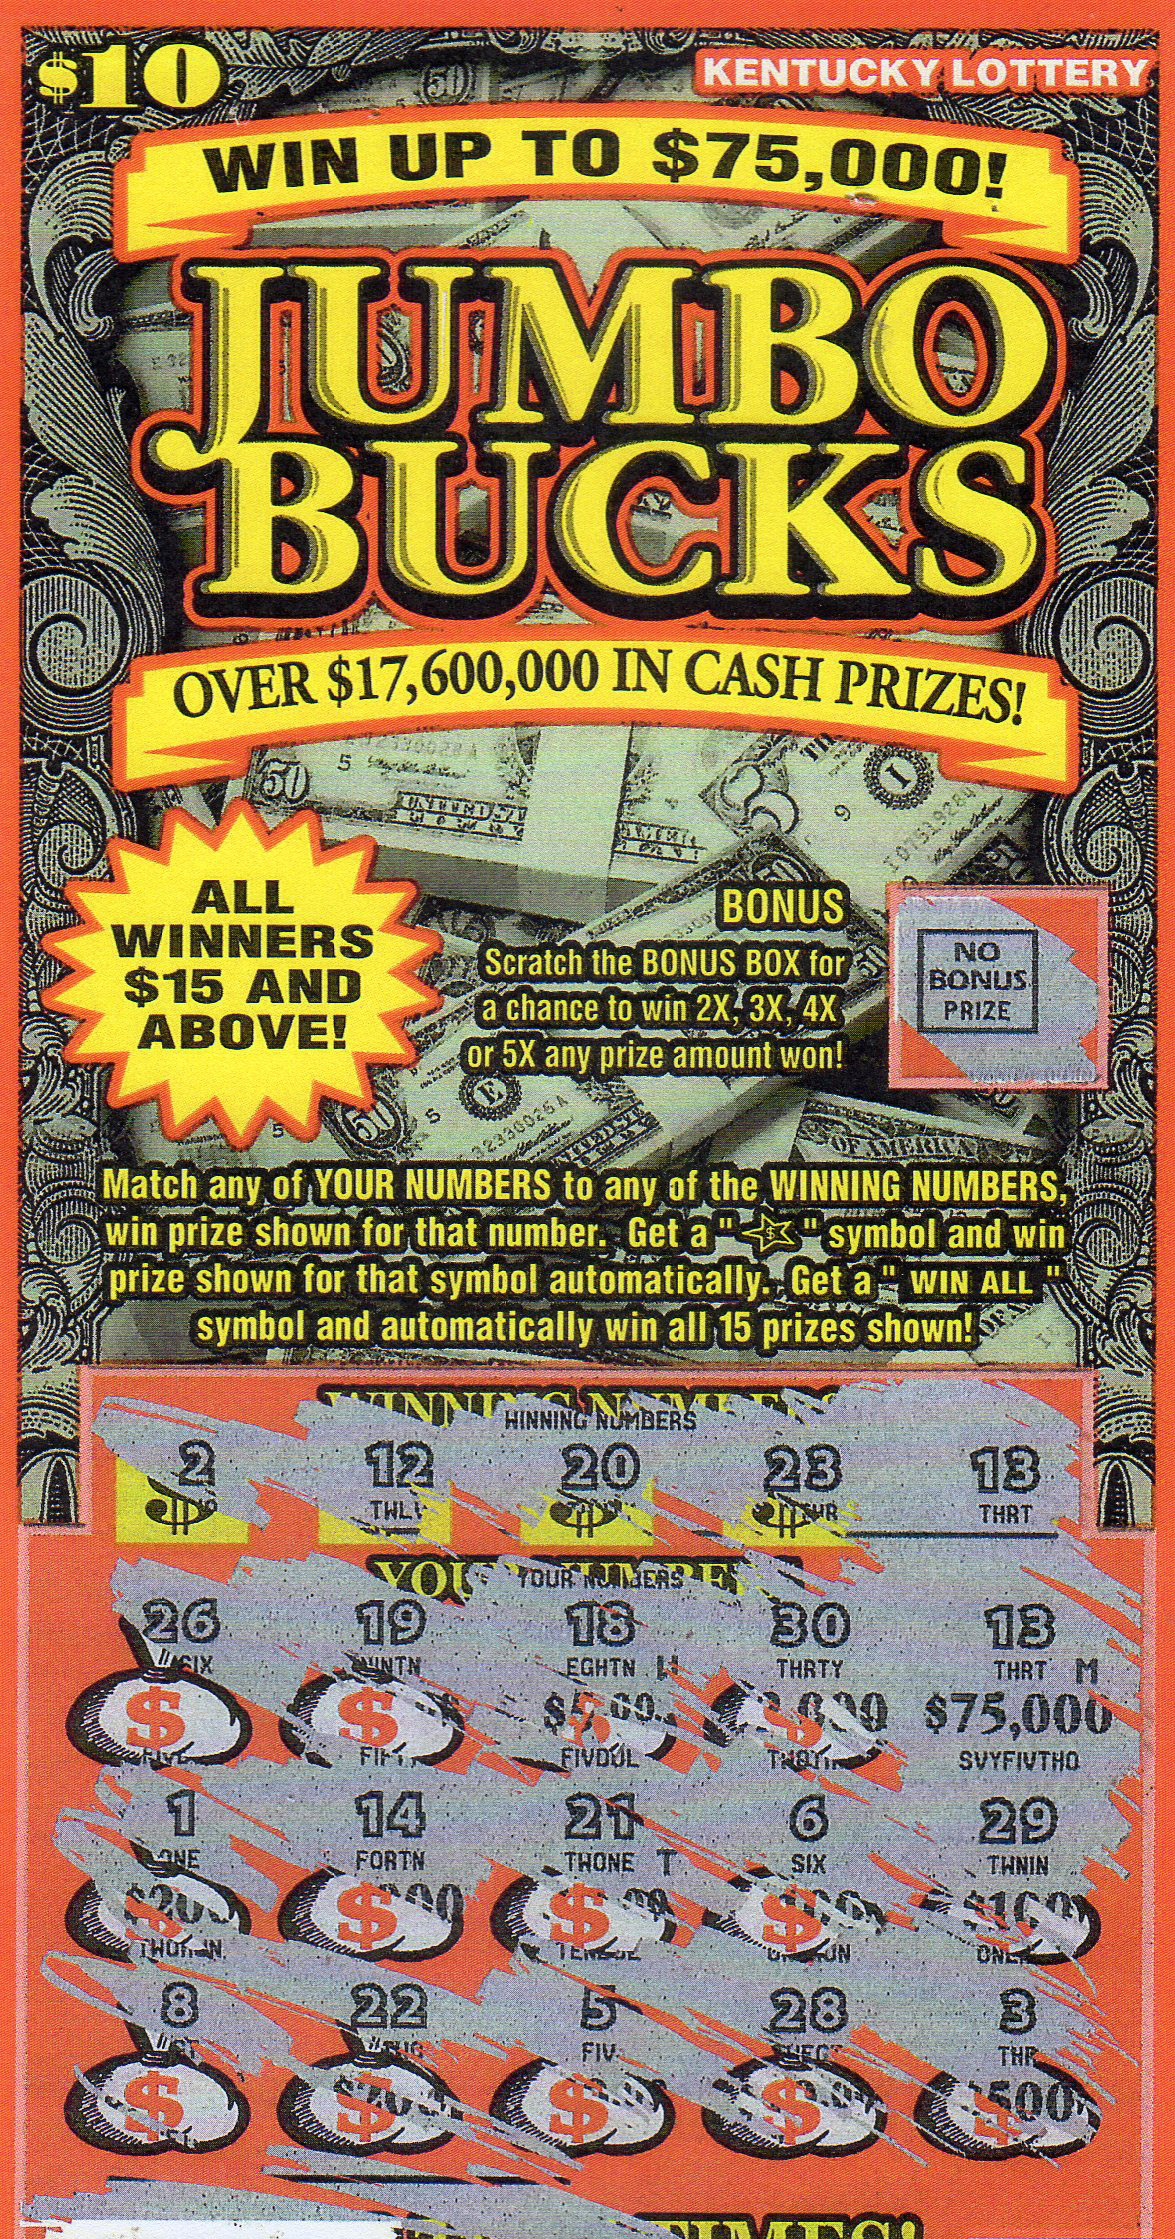 Ohio lottery lucky for life prizes in bulk